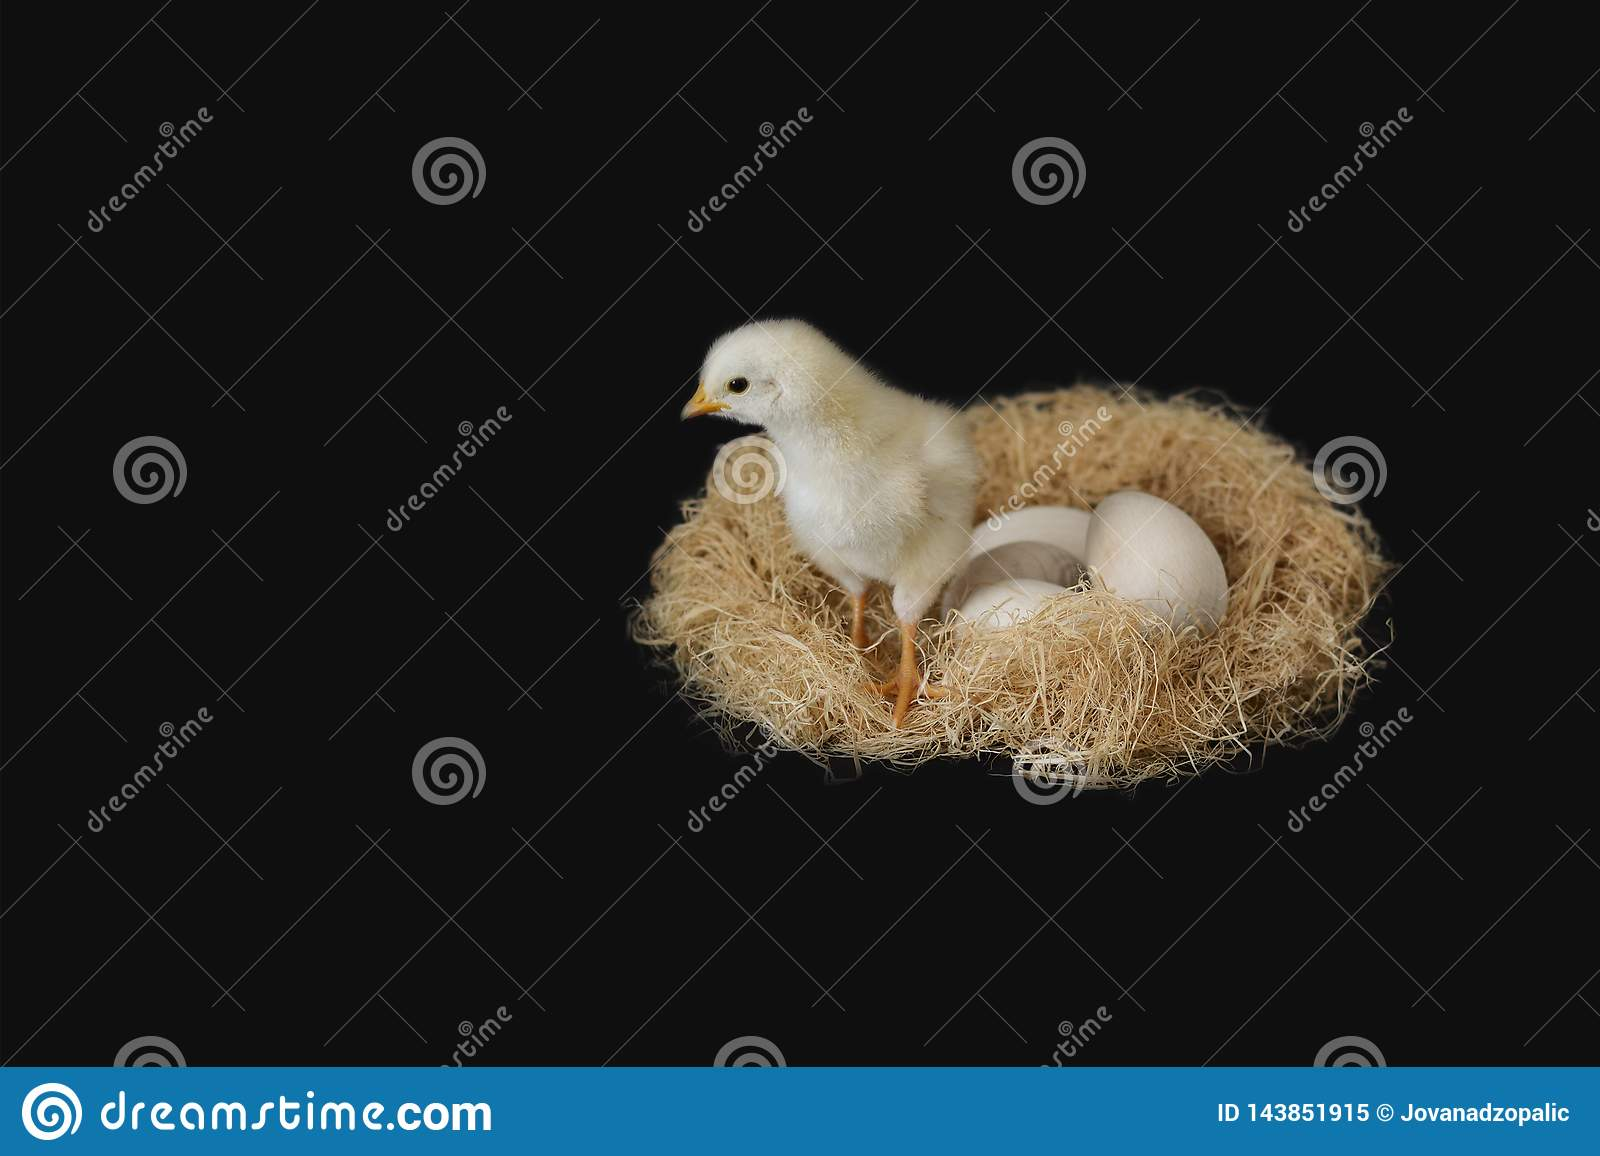 Yellow, white chicken in a nest with five eggs on a black background.